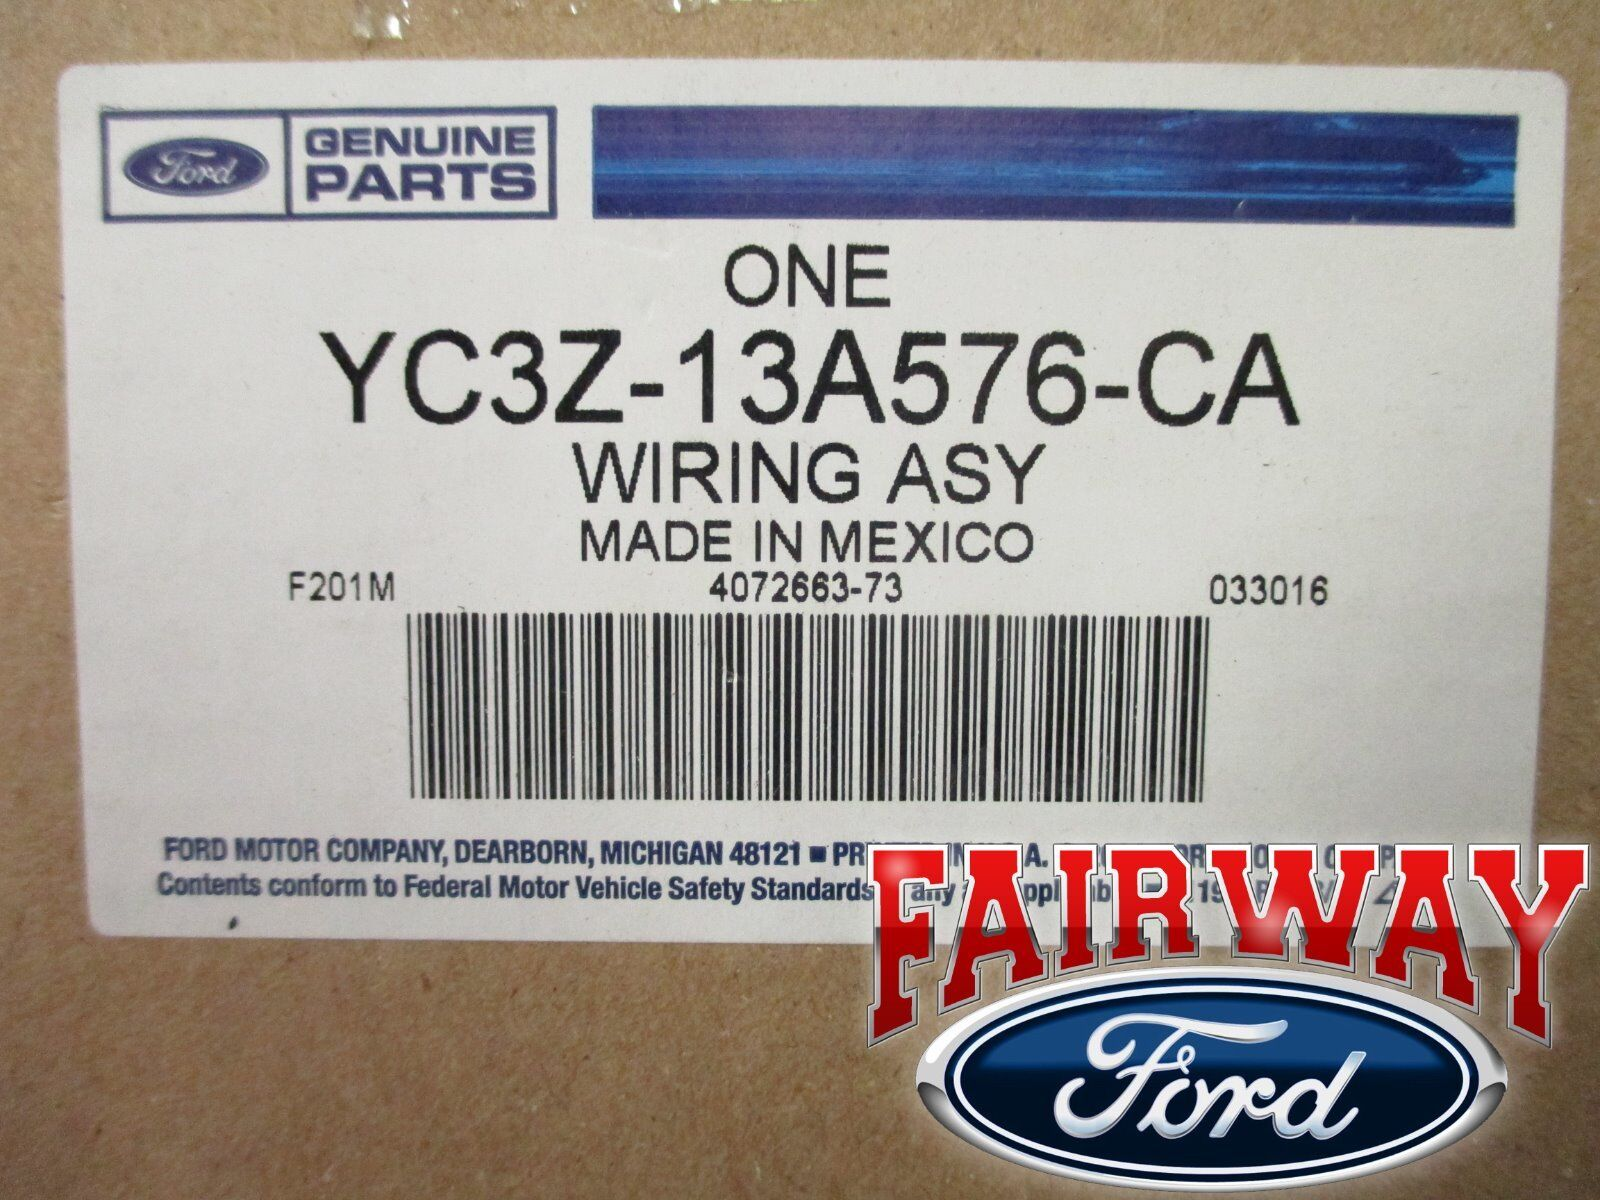 99 thru 01 f250 f350 super duty ford 4 7 pin trailer tow wiring 99 thru 01 f250 f350 super duty ford 4 7 pin trailer tow wiring harness plug 5 5 of 6